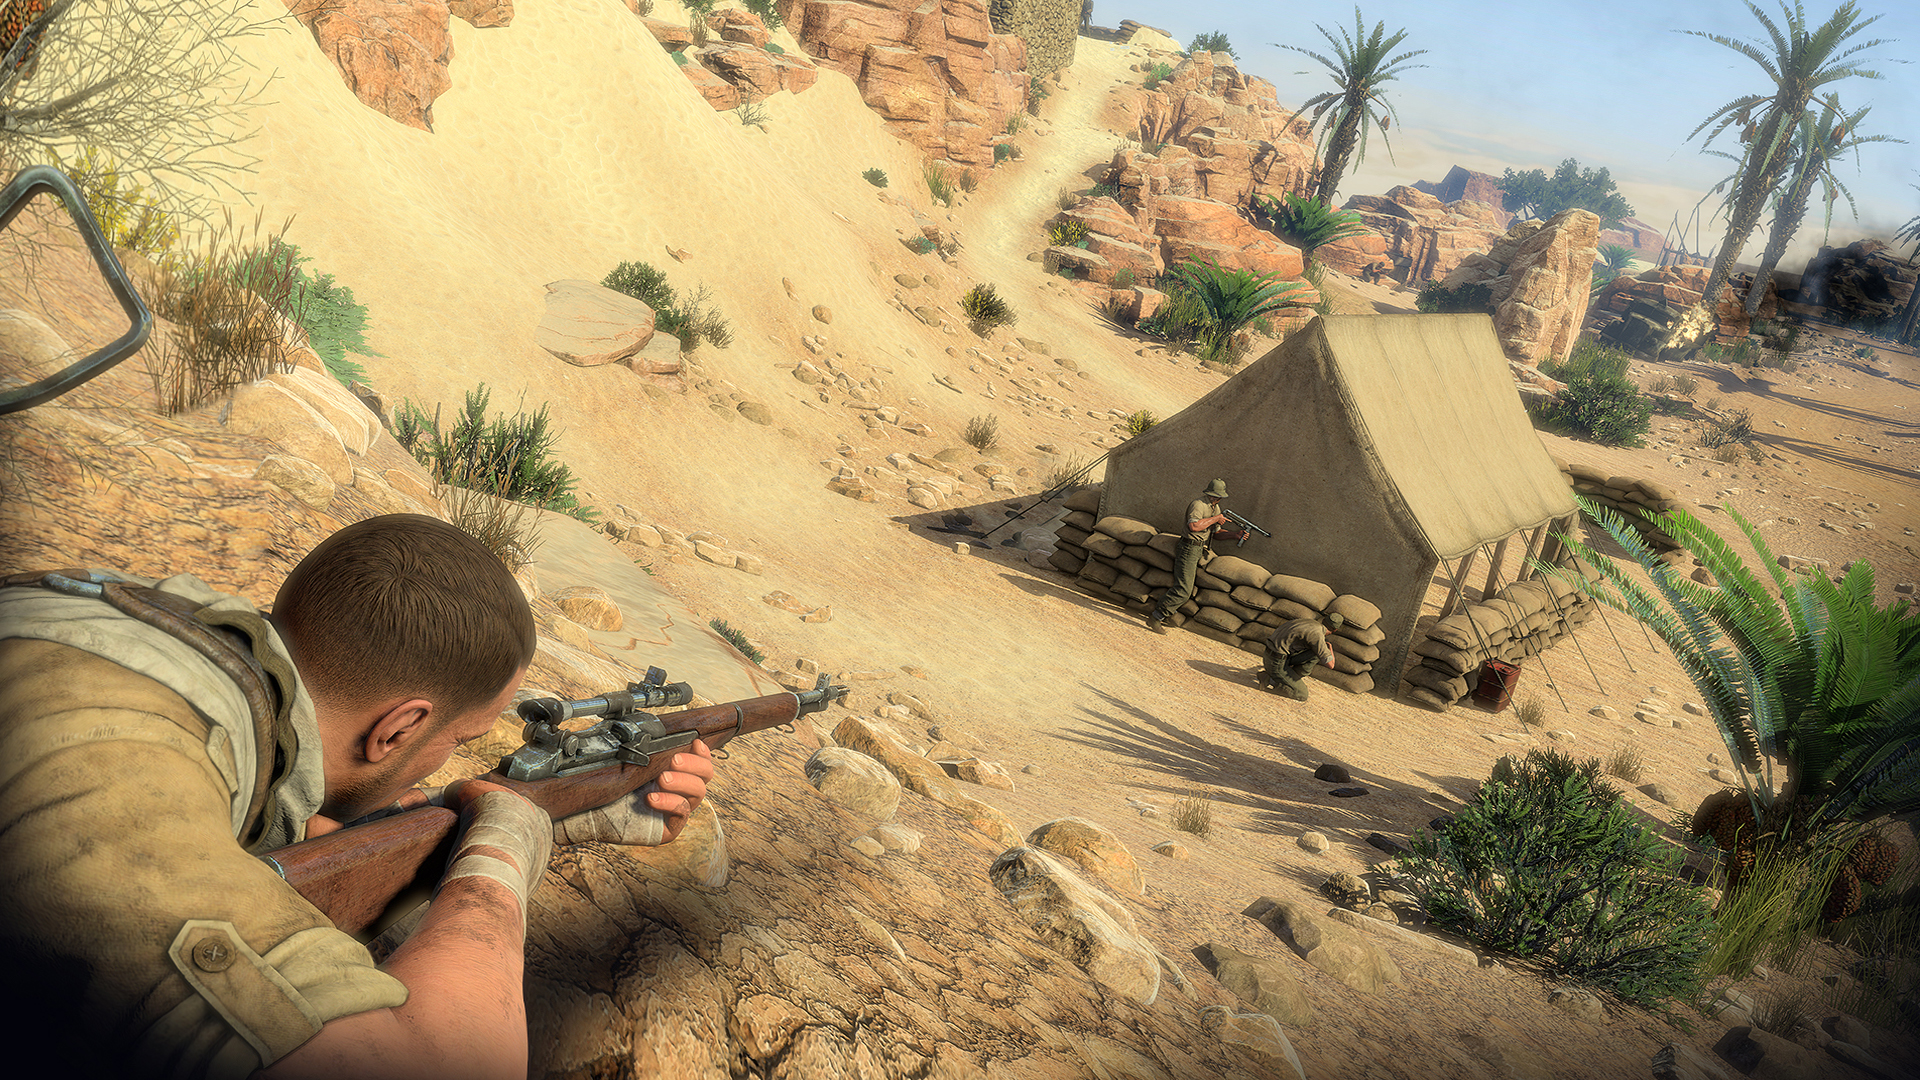 Sniper Elite 3 - z Evropy do Afriky 93220